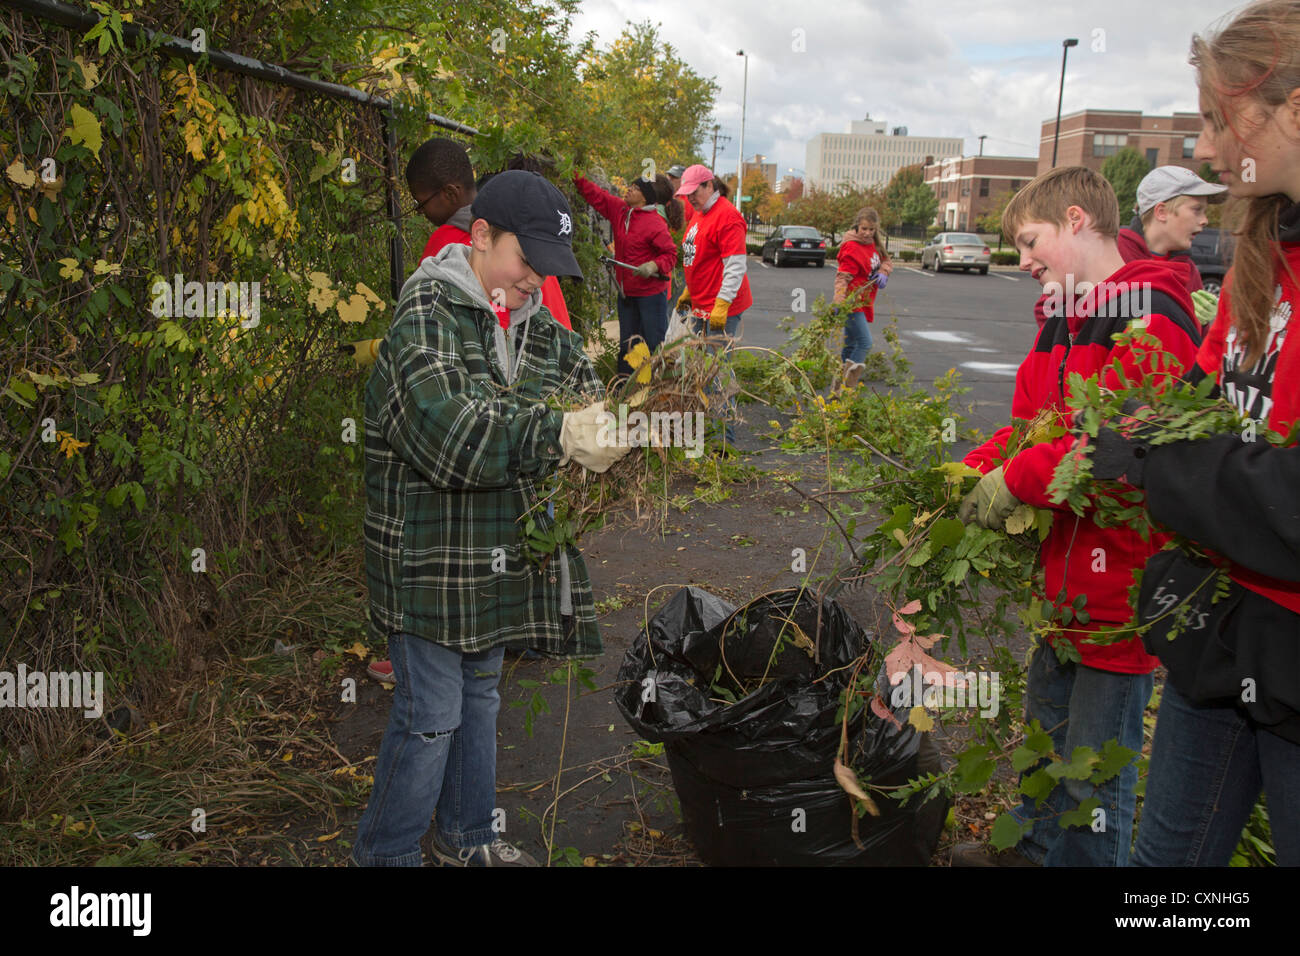 Volunteers Clear Brush from Fence Along Vacant Lot - Stock Image